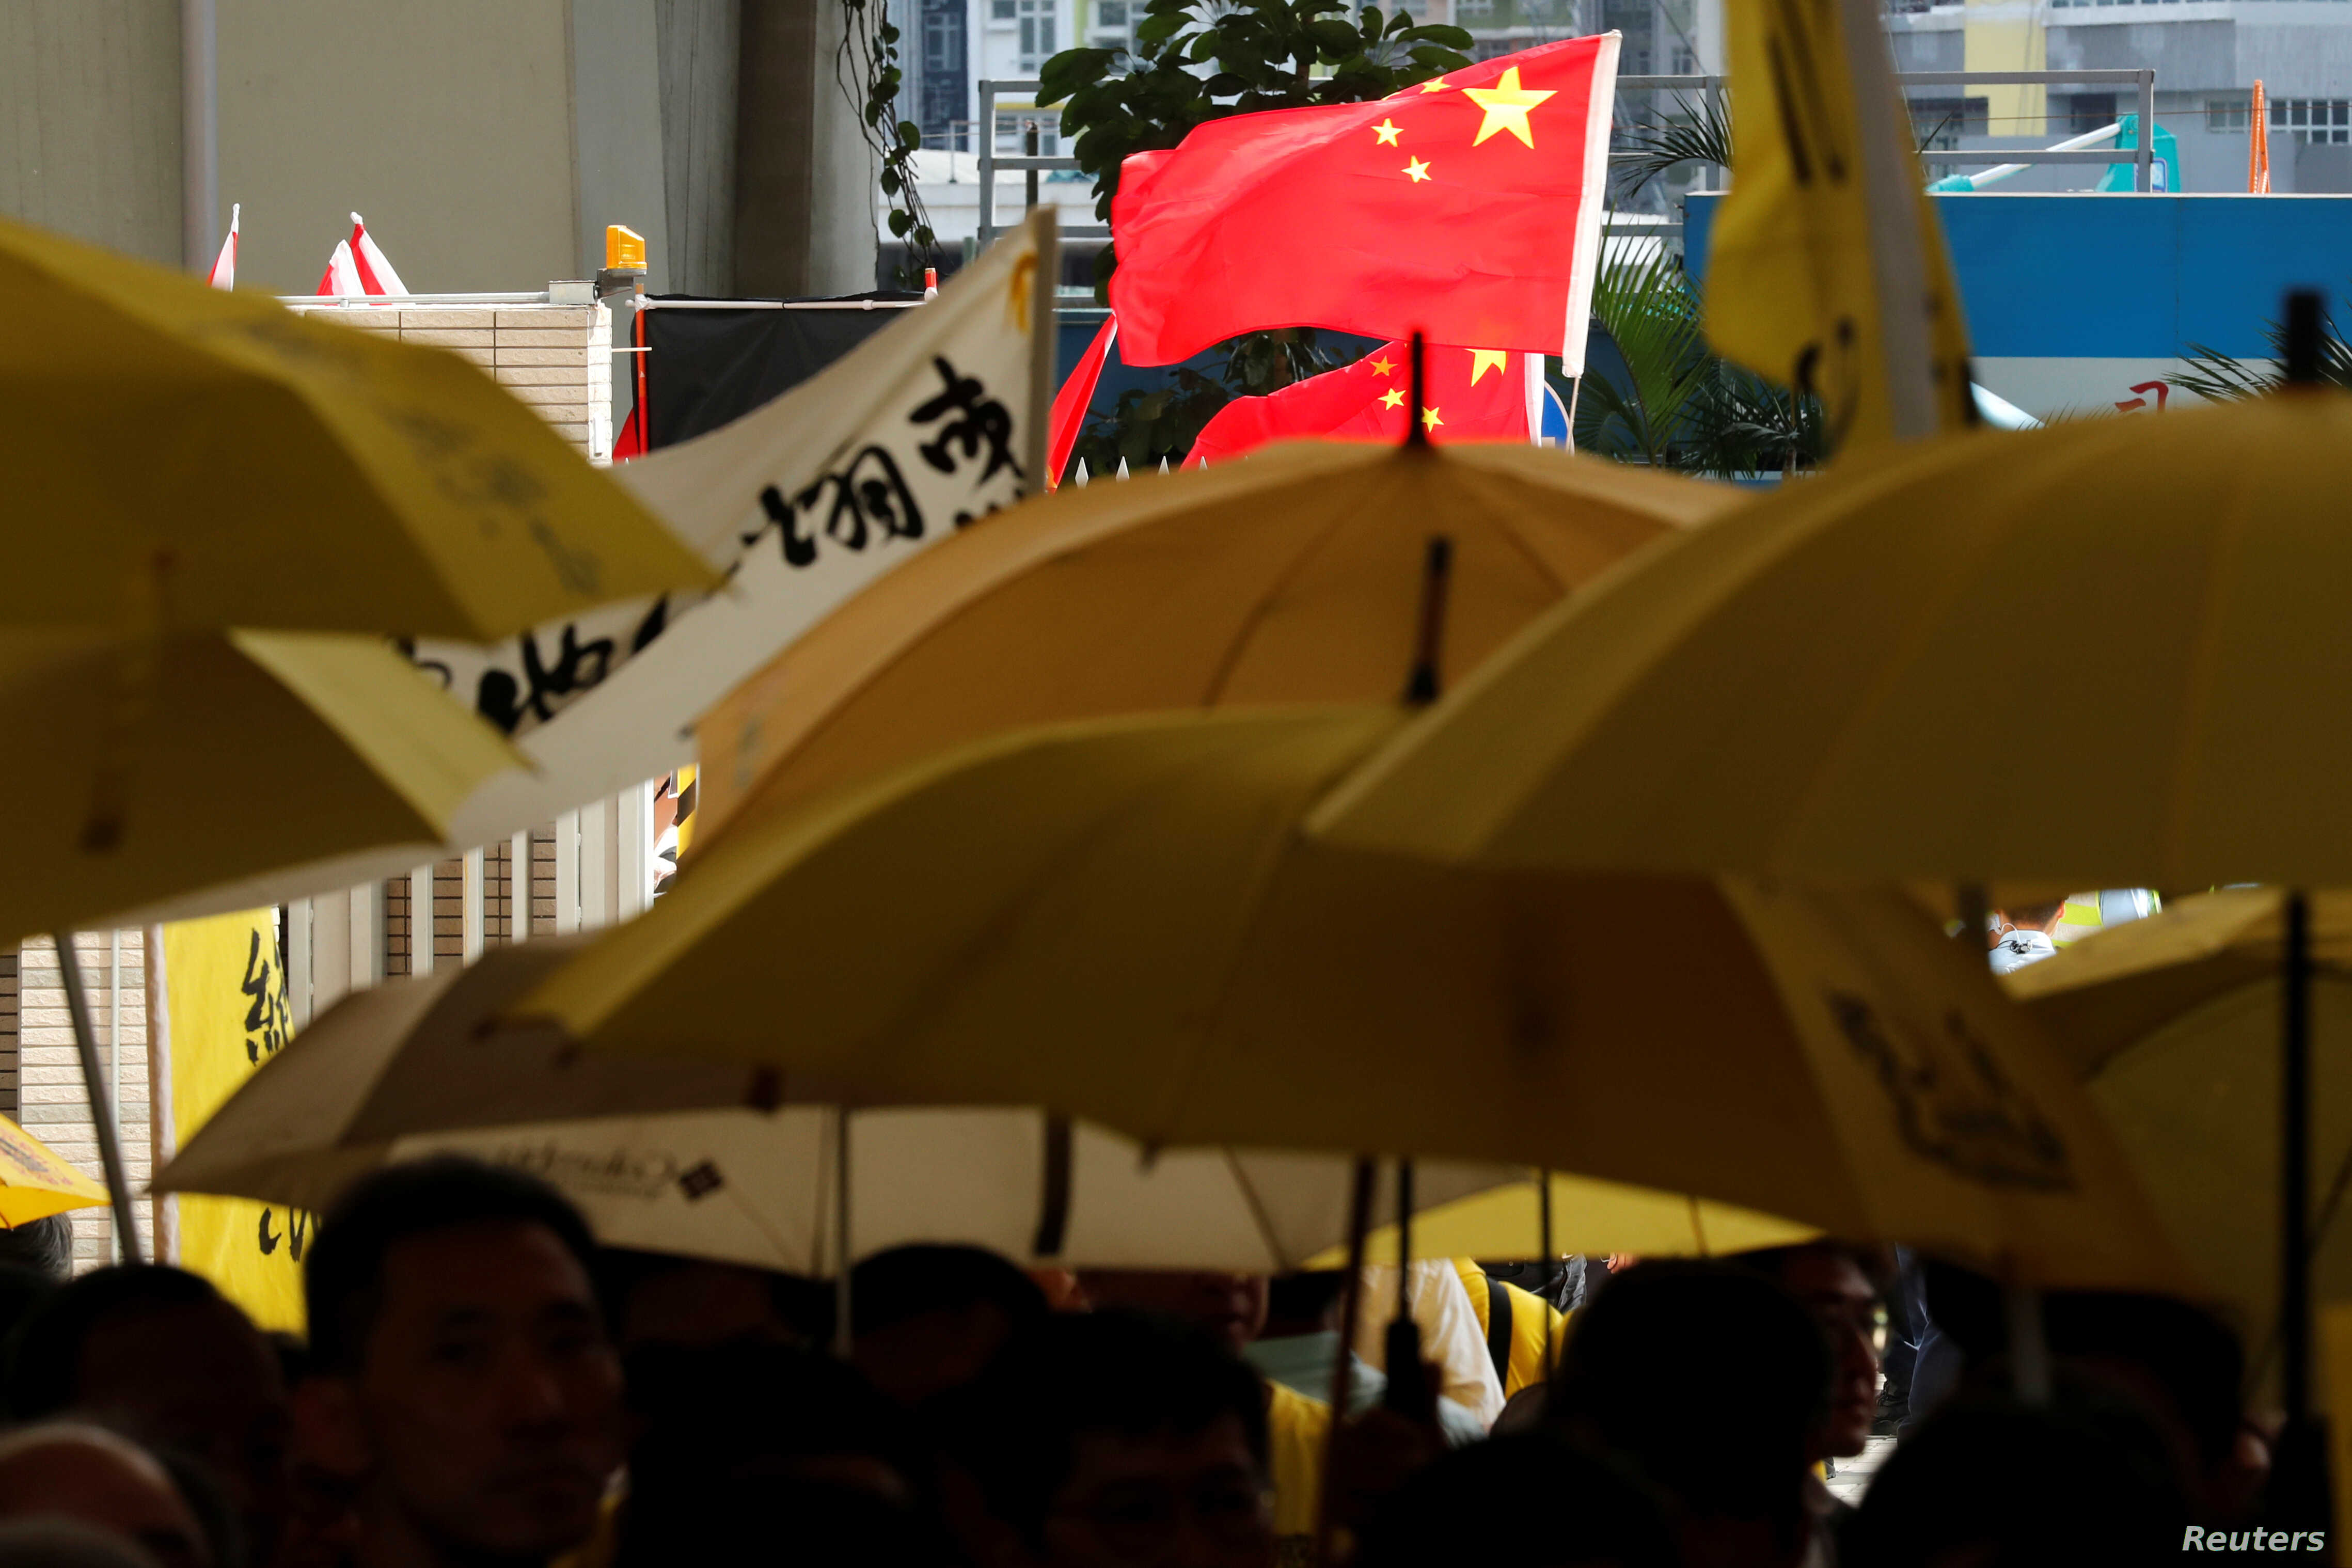 Pro-China supporters wave Chinese national flag as pro-democracy supporters hold yellow umbrellas to support leaders of Occupy Central activists outside the court, in Hong Kong, China, April 24, 2019.